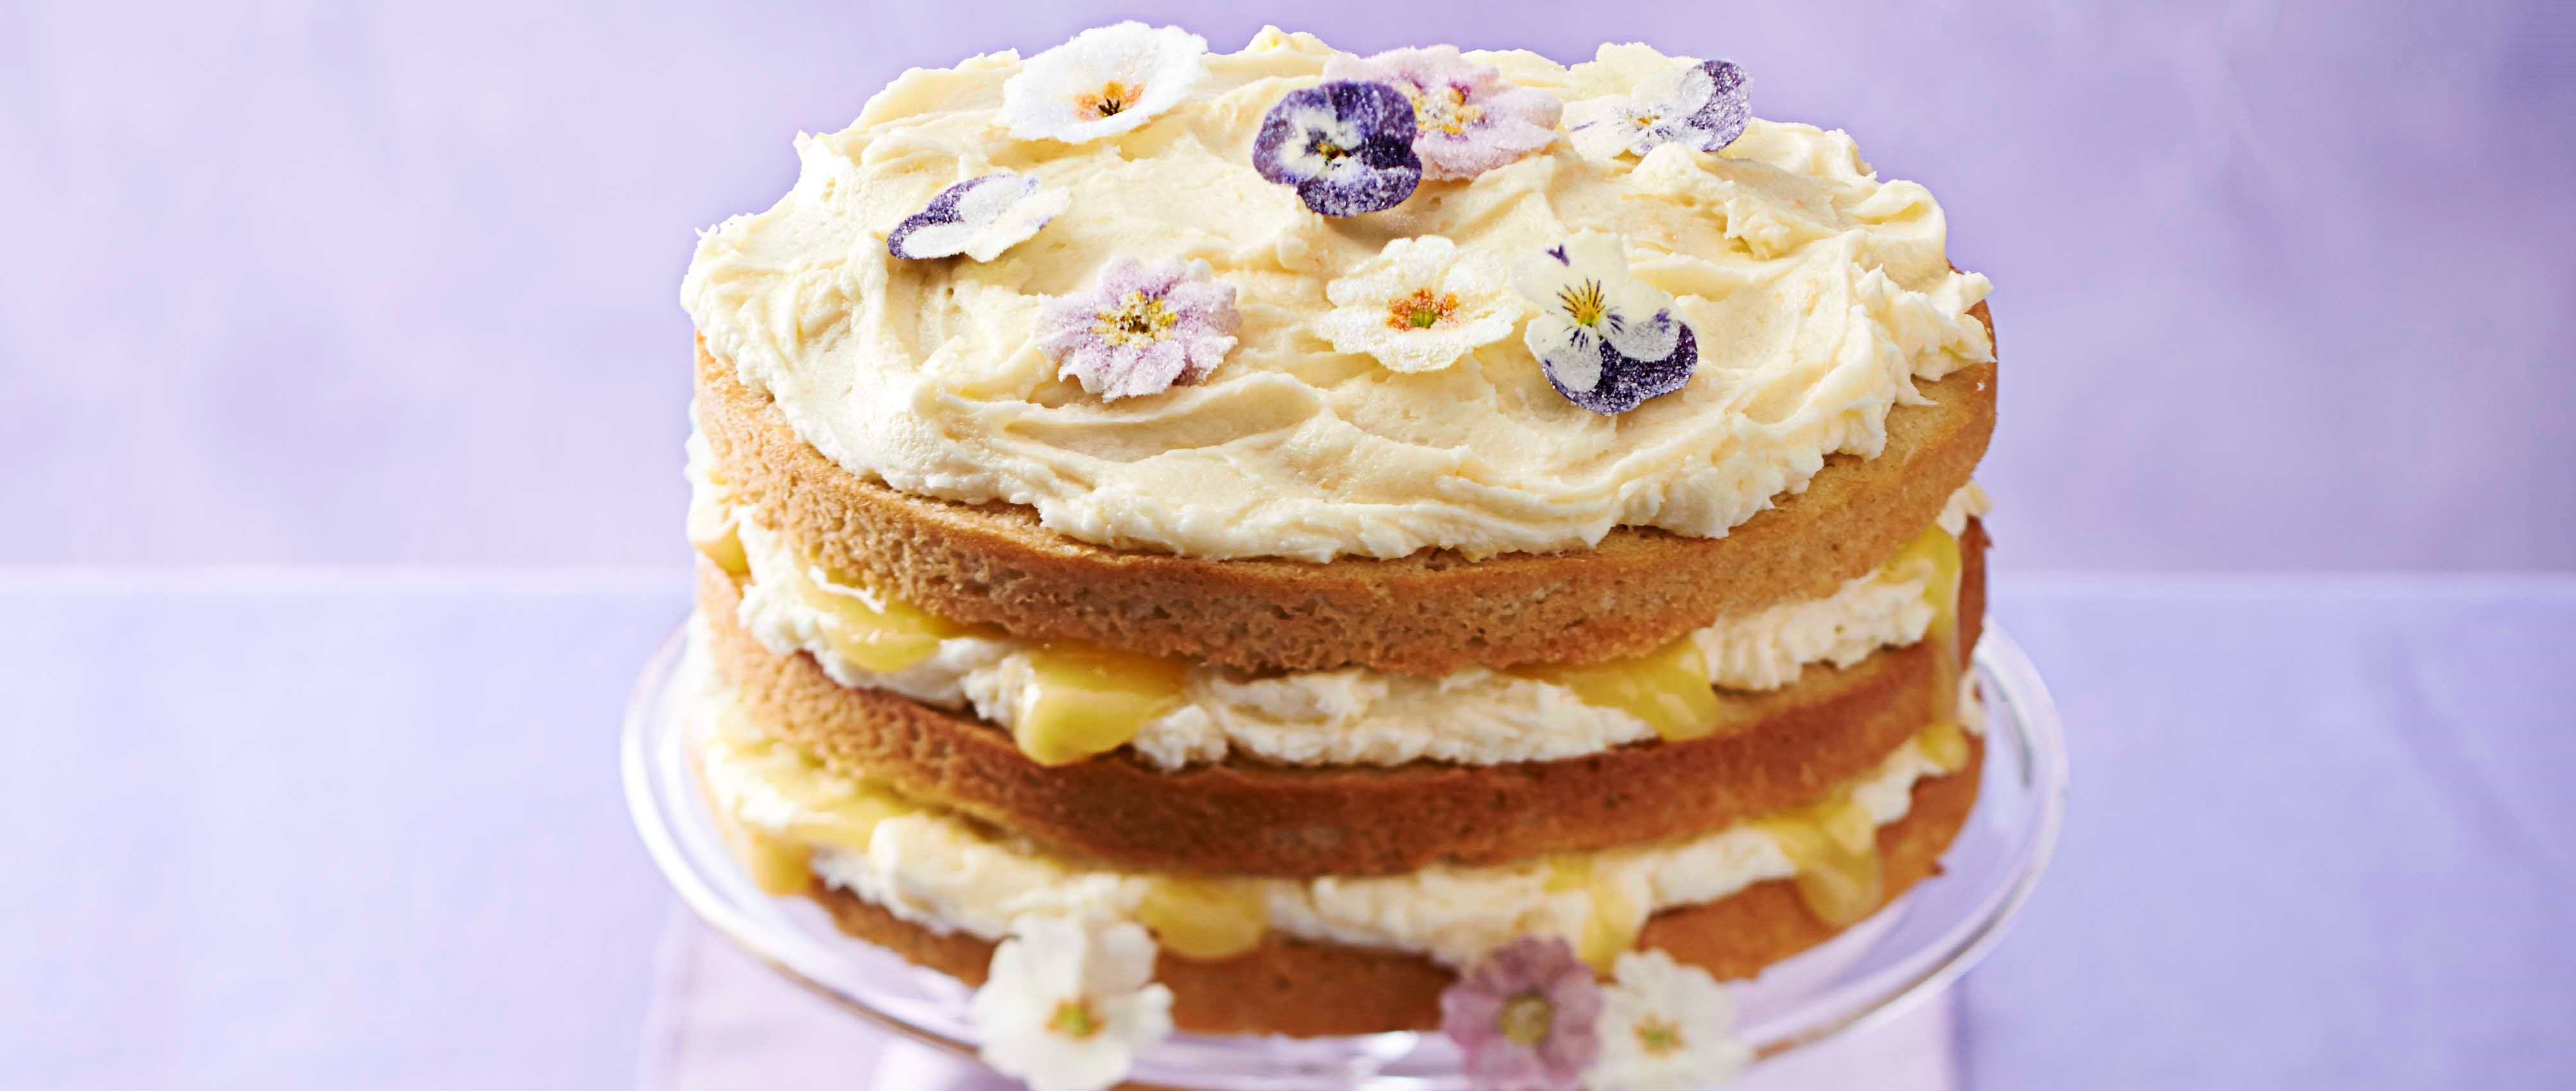 Cake Recipes Using Lemon Curd: Lemon Curd Layer Cake